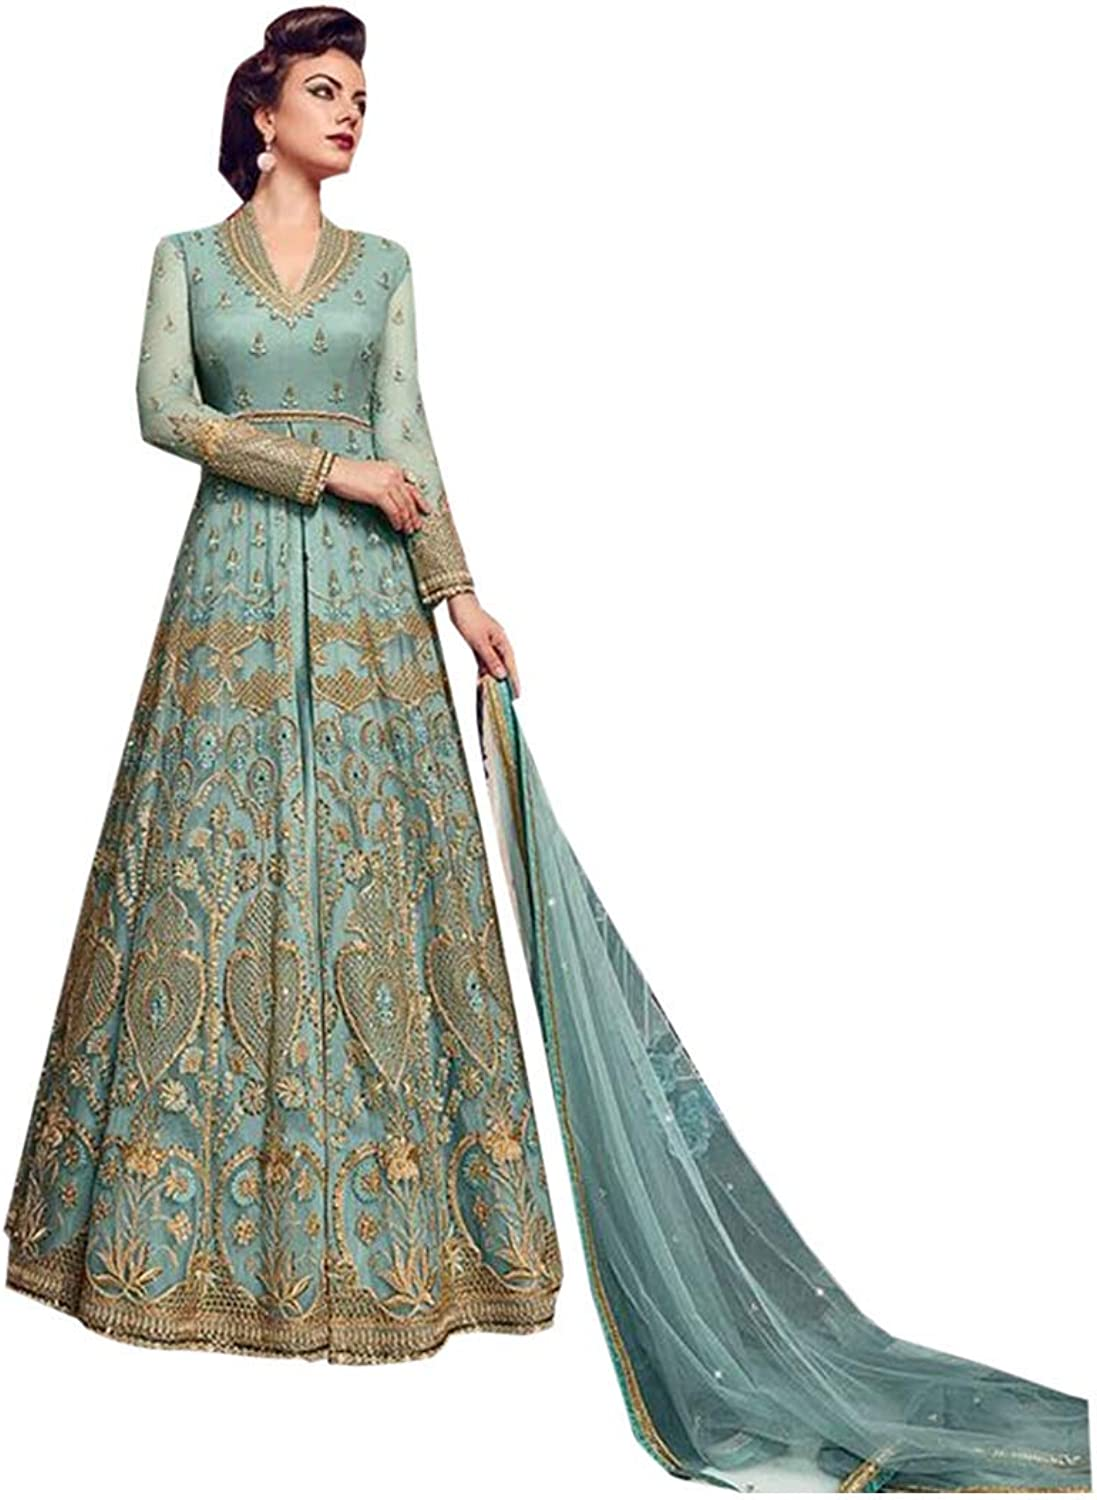 Designer Heavy Anarkali Salwar Kameez Suit Split Gown Long Dress Indian Ethnic Wear 7142